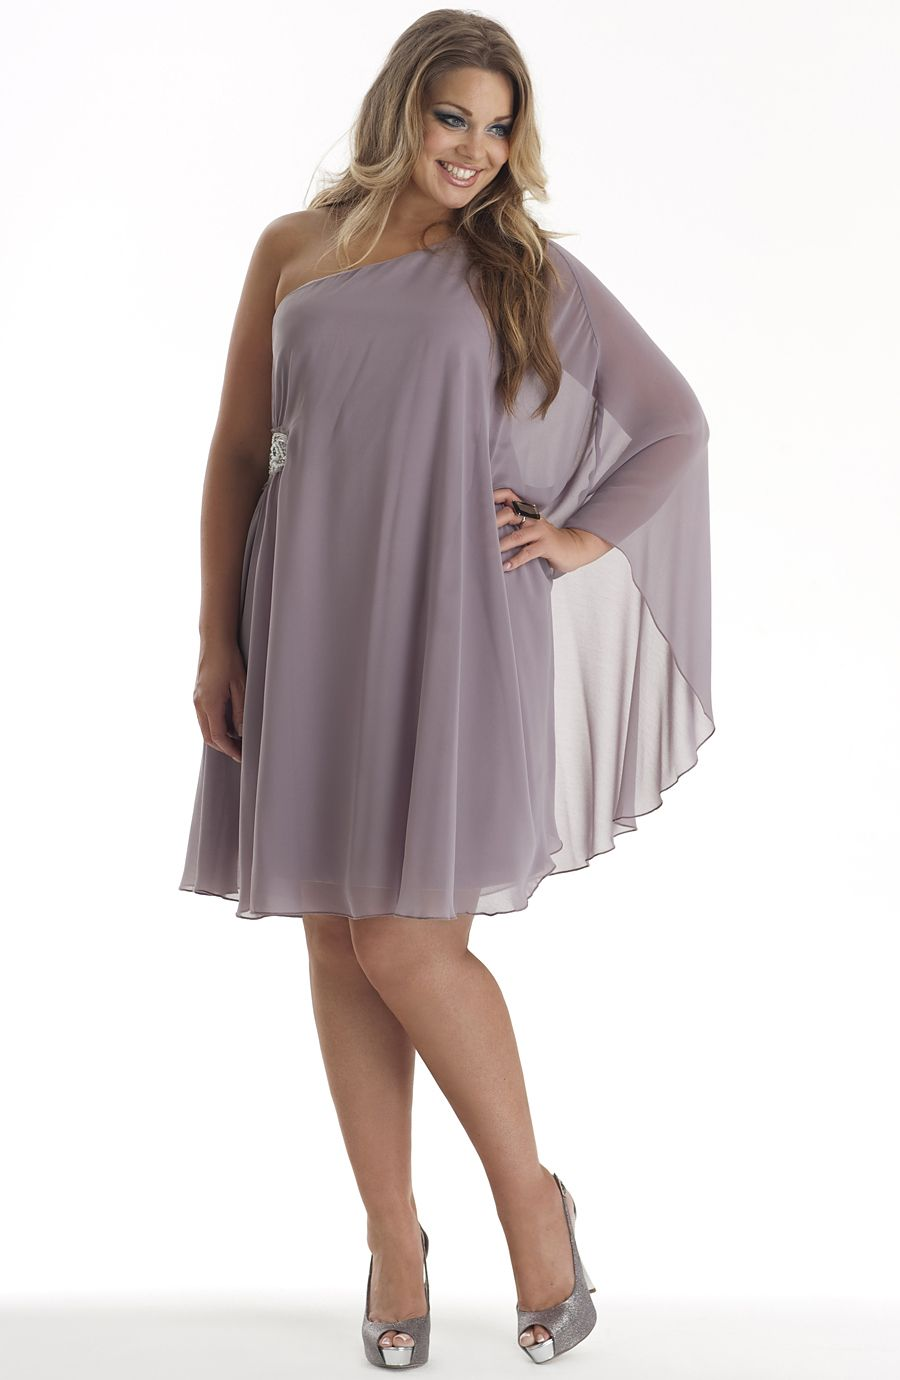 Dresses evening dresses plus size larger sizes Plus size designer clothes uk